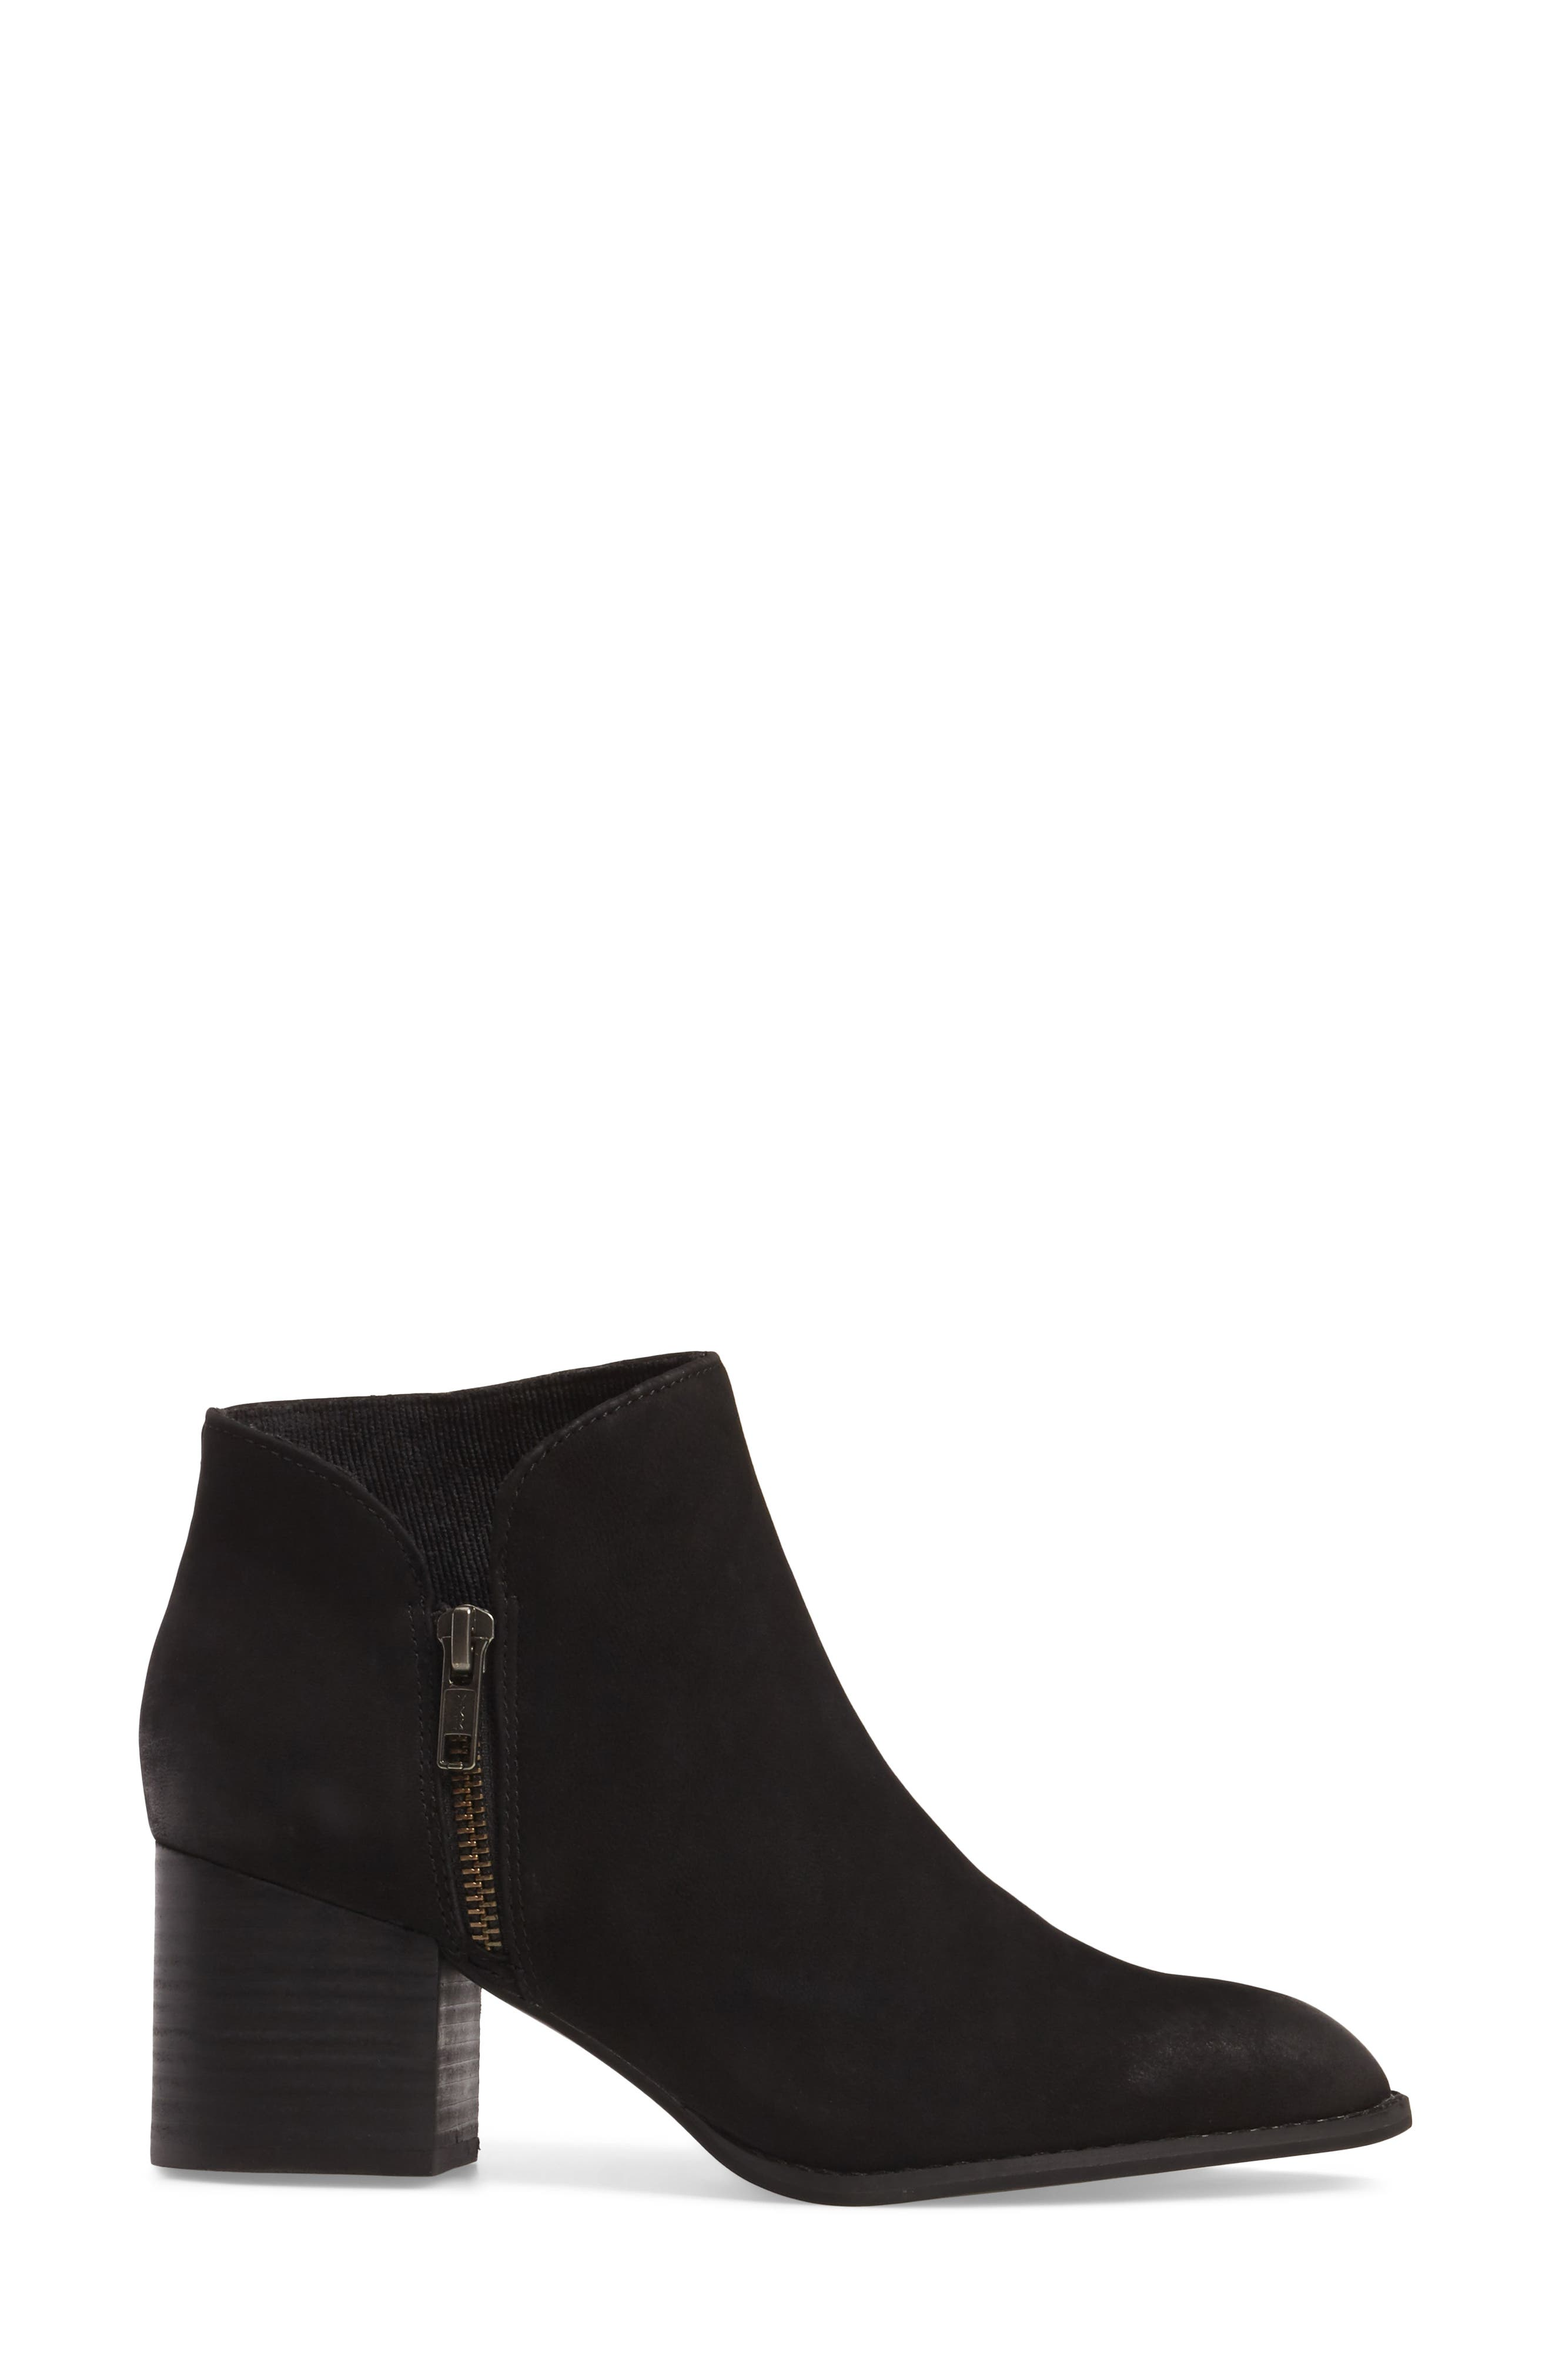 Chaparral Bootie,                             Alternate thumbnail 3, color,                             Black Leather